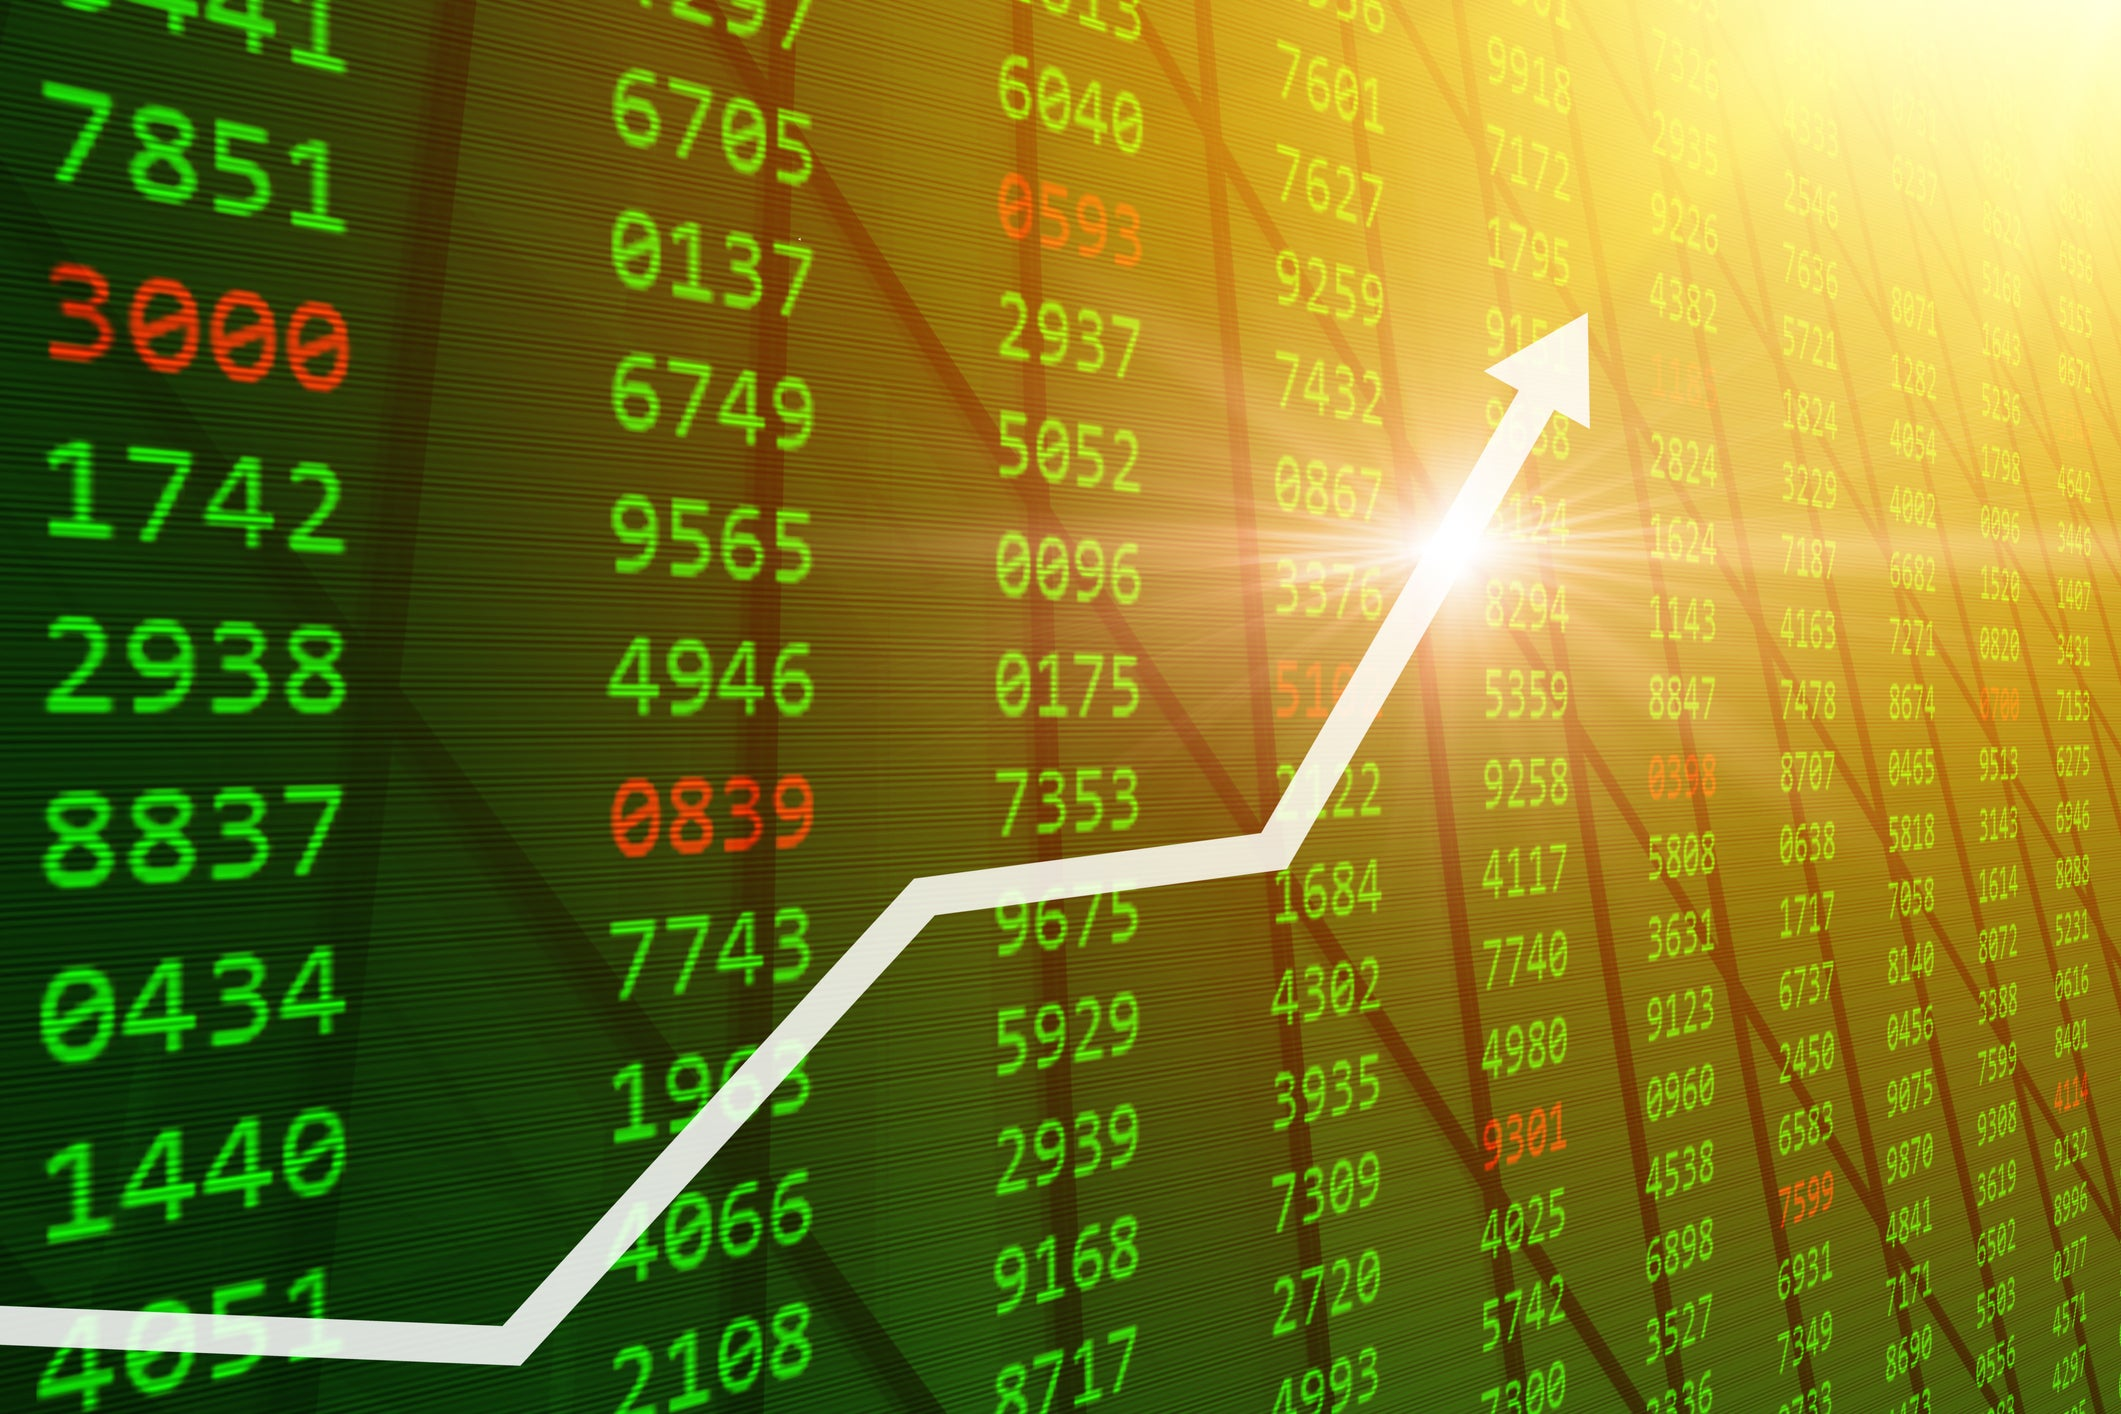 1 Financial Stock I'd Buy Right Now